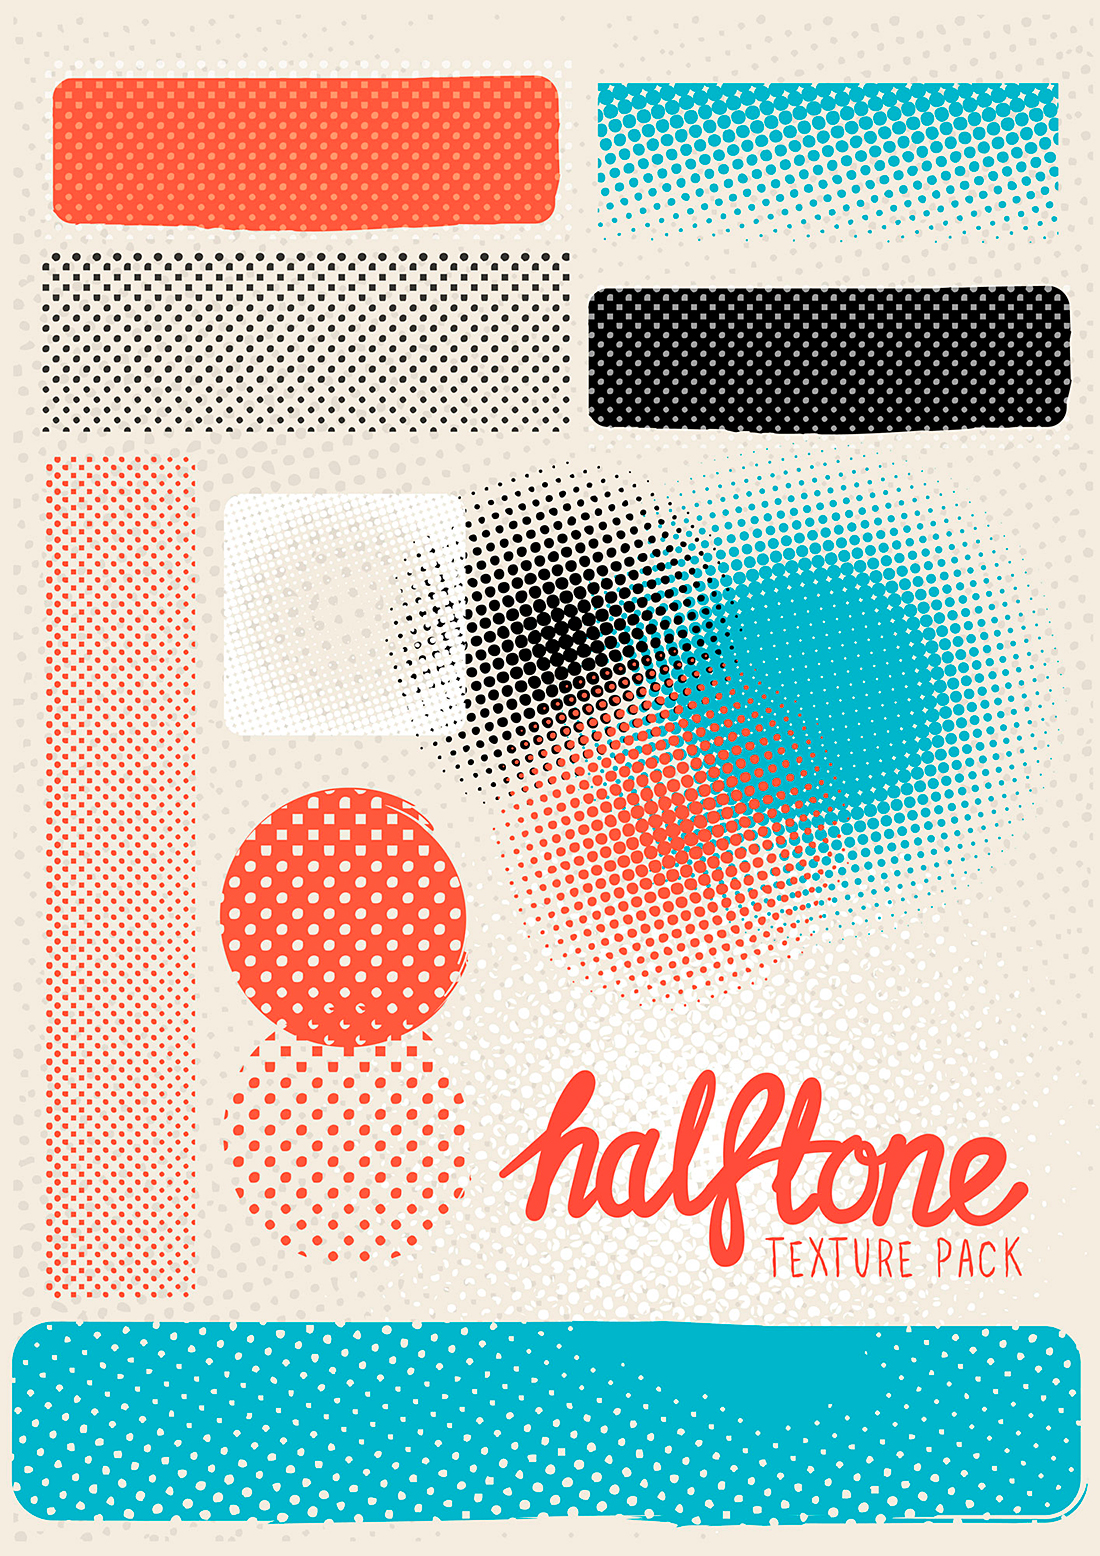 solarseven-halftone-texture-pack